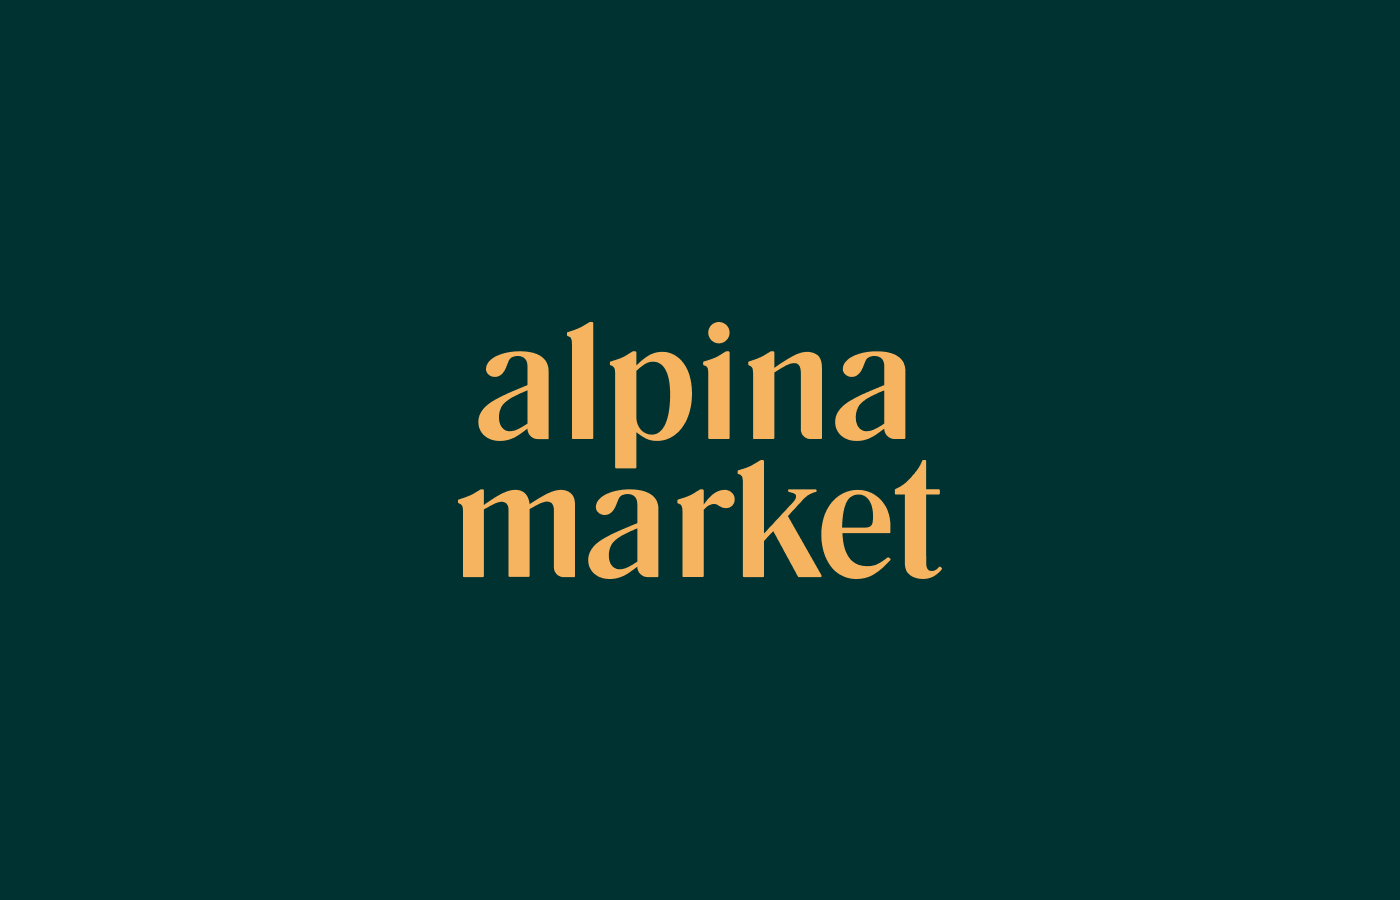 Alpina Market Furniture Factory Branding Created by Severnii Design